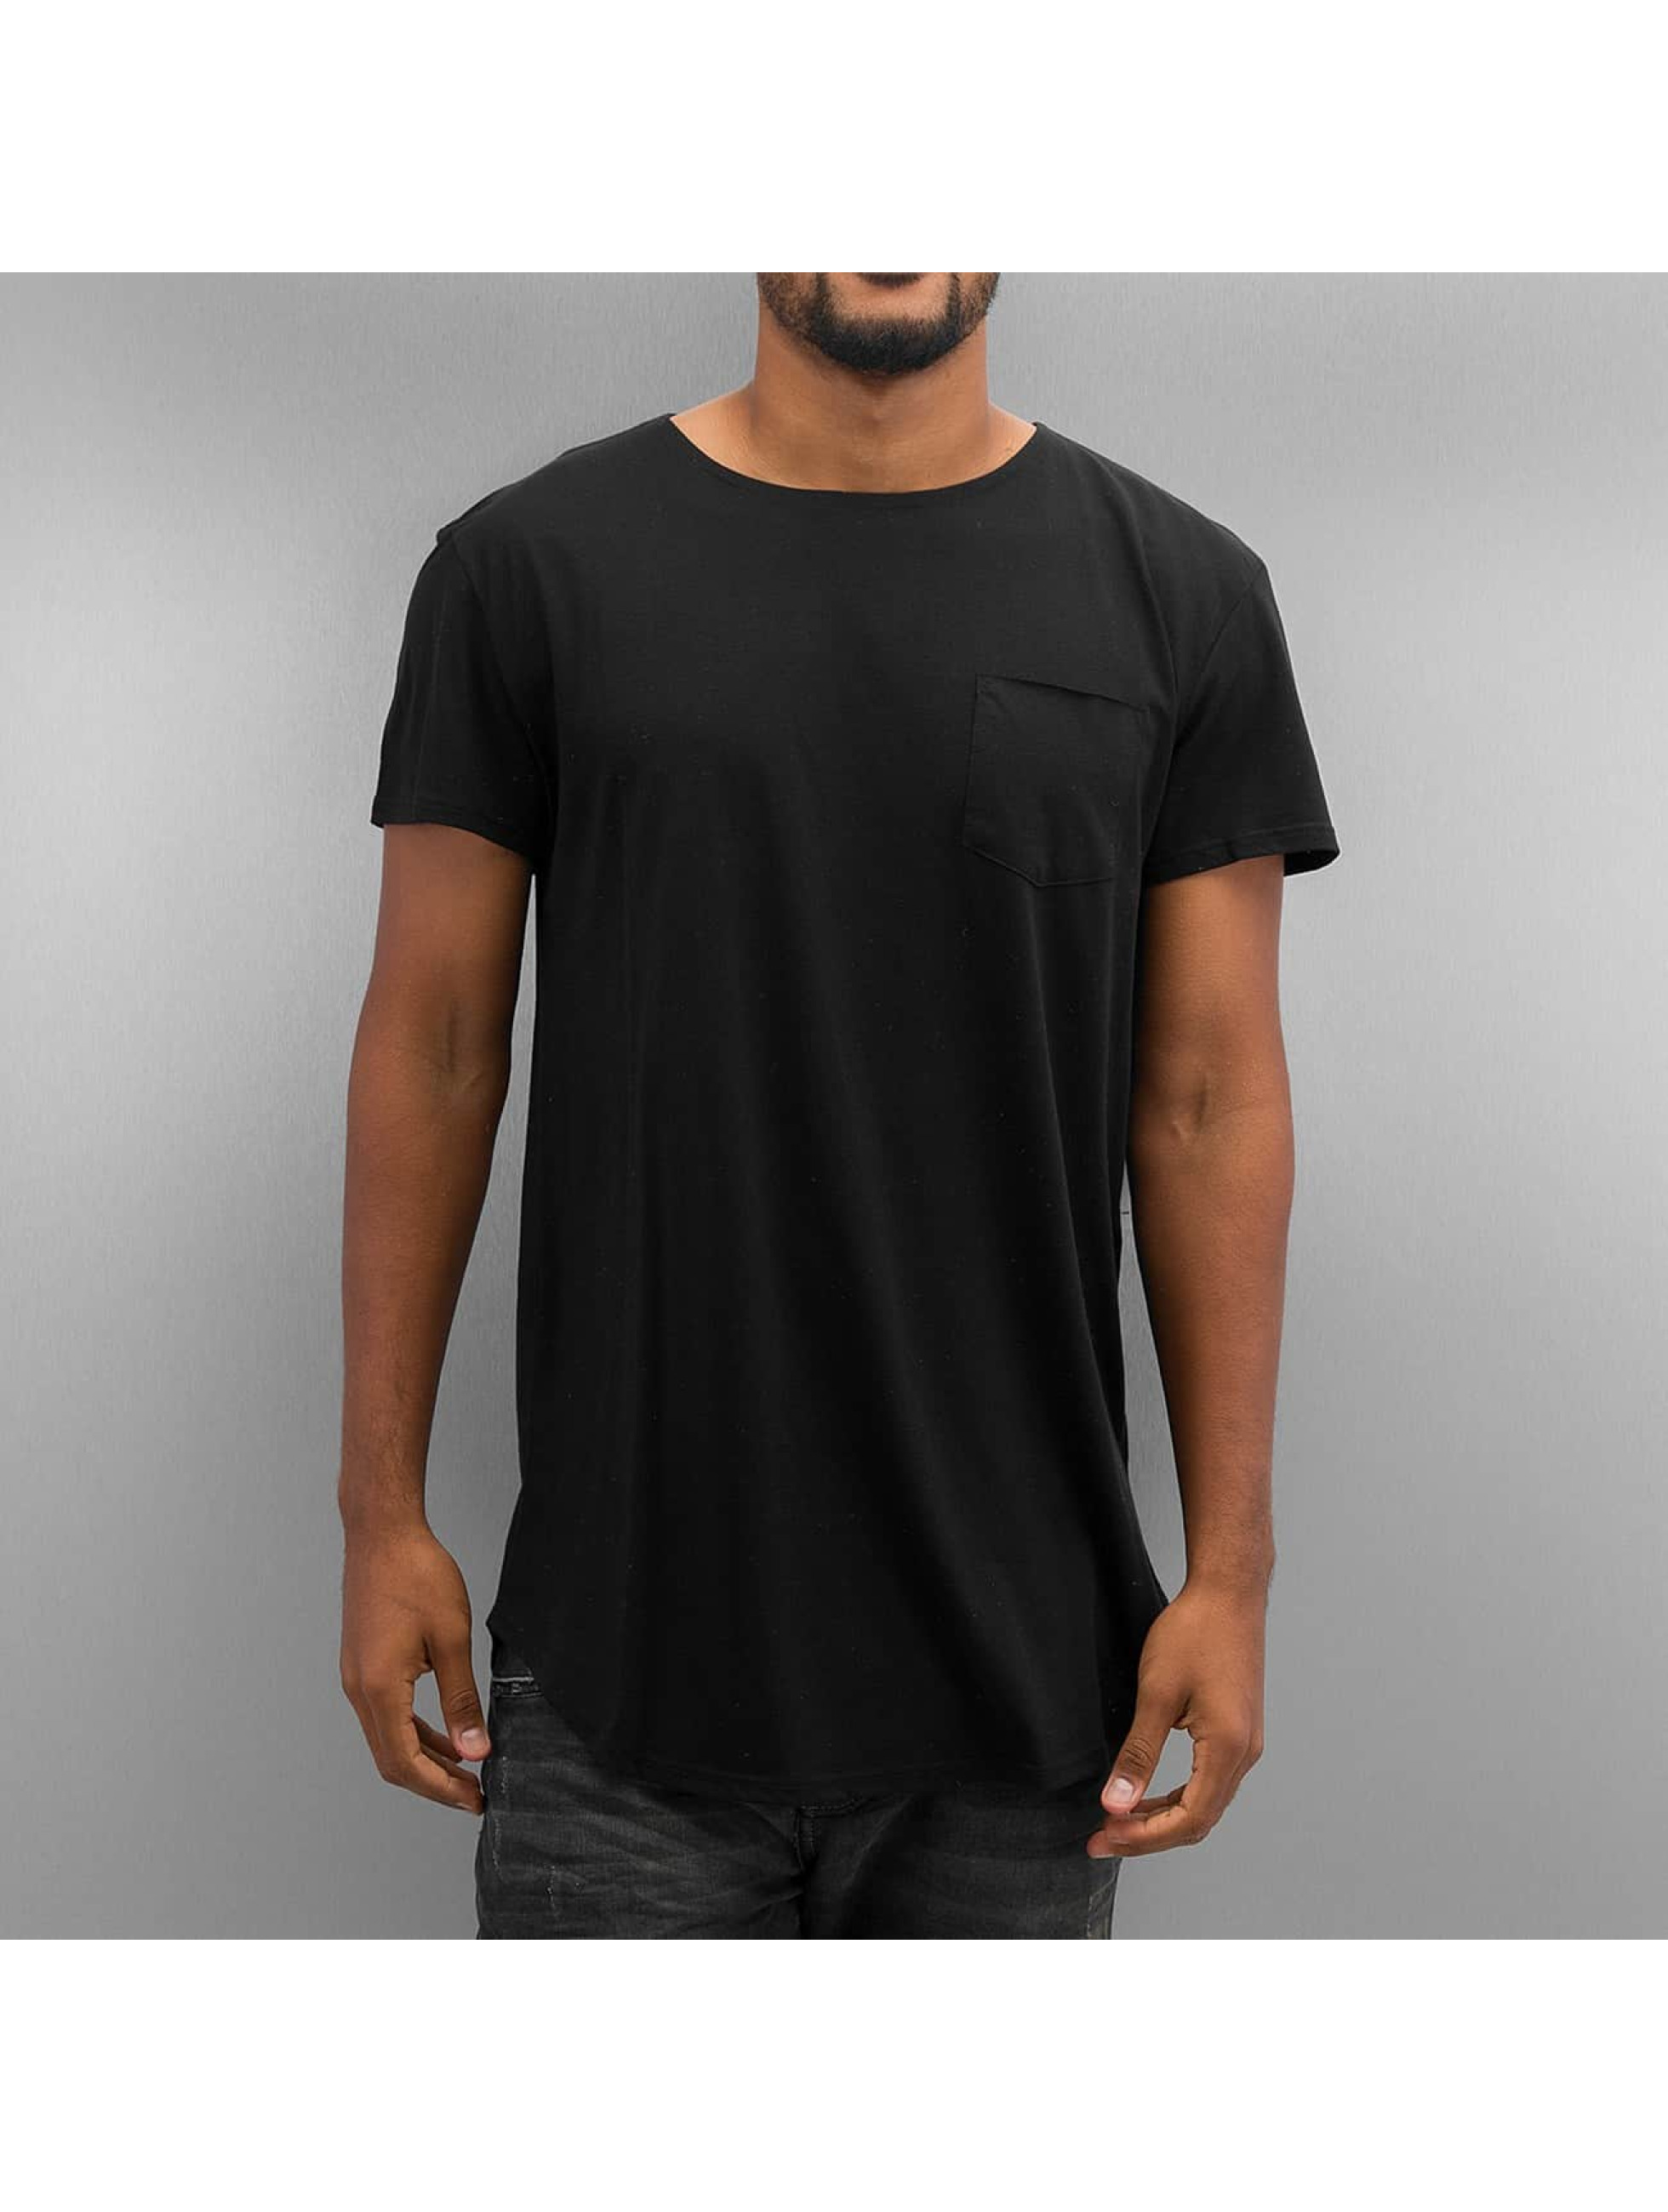 T-Shirt Bosley Pocket in schwarz